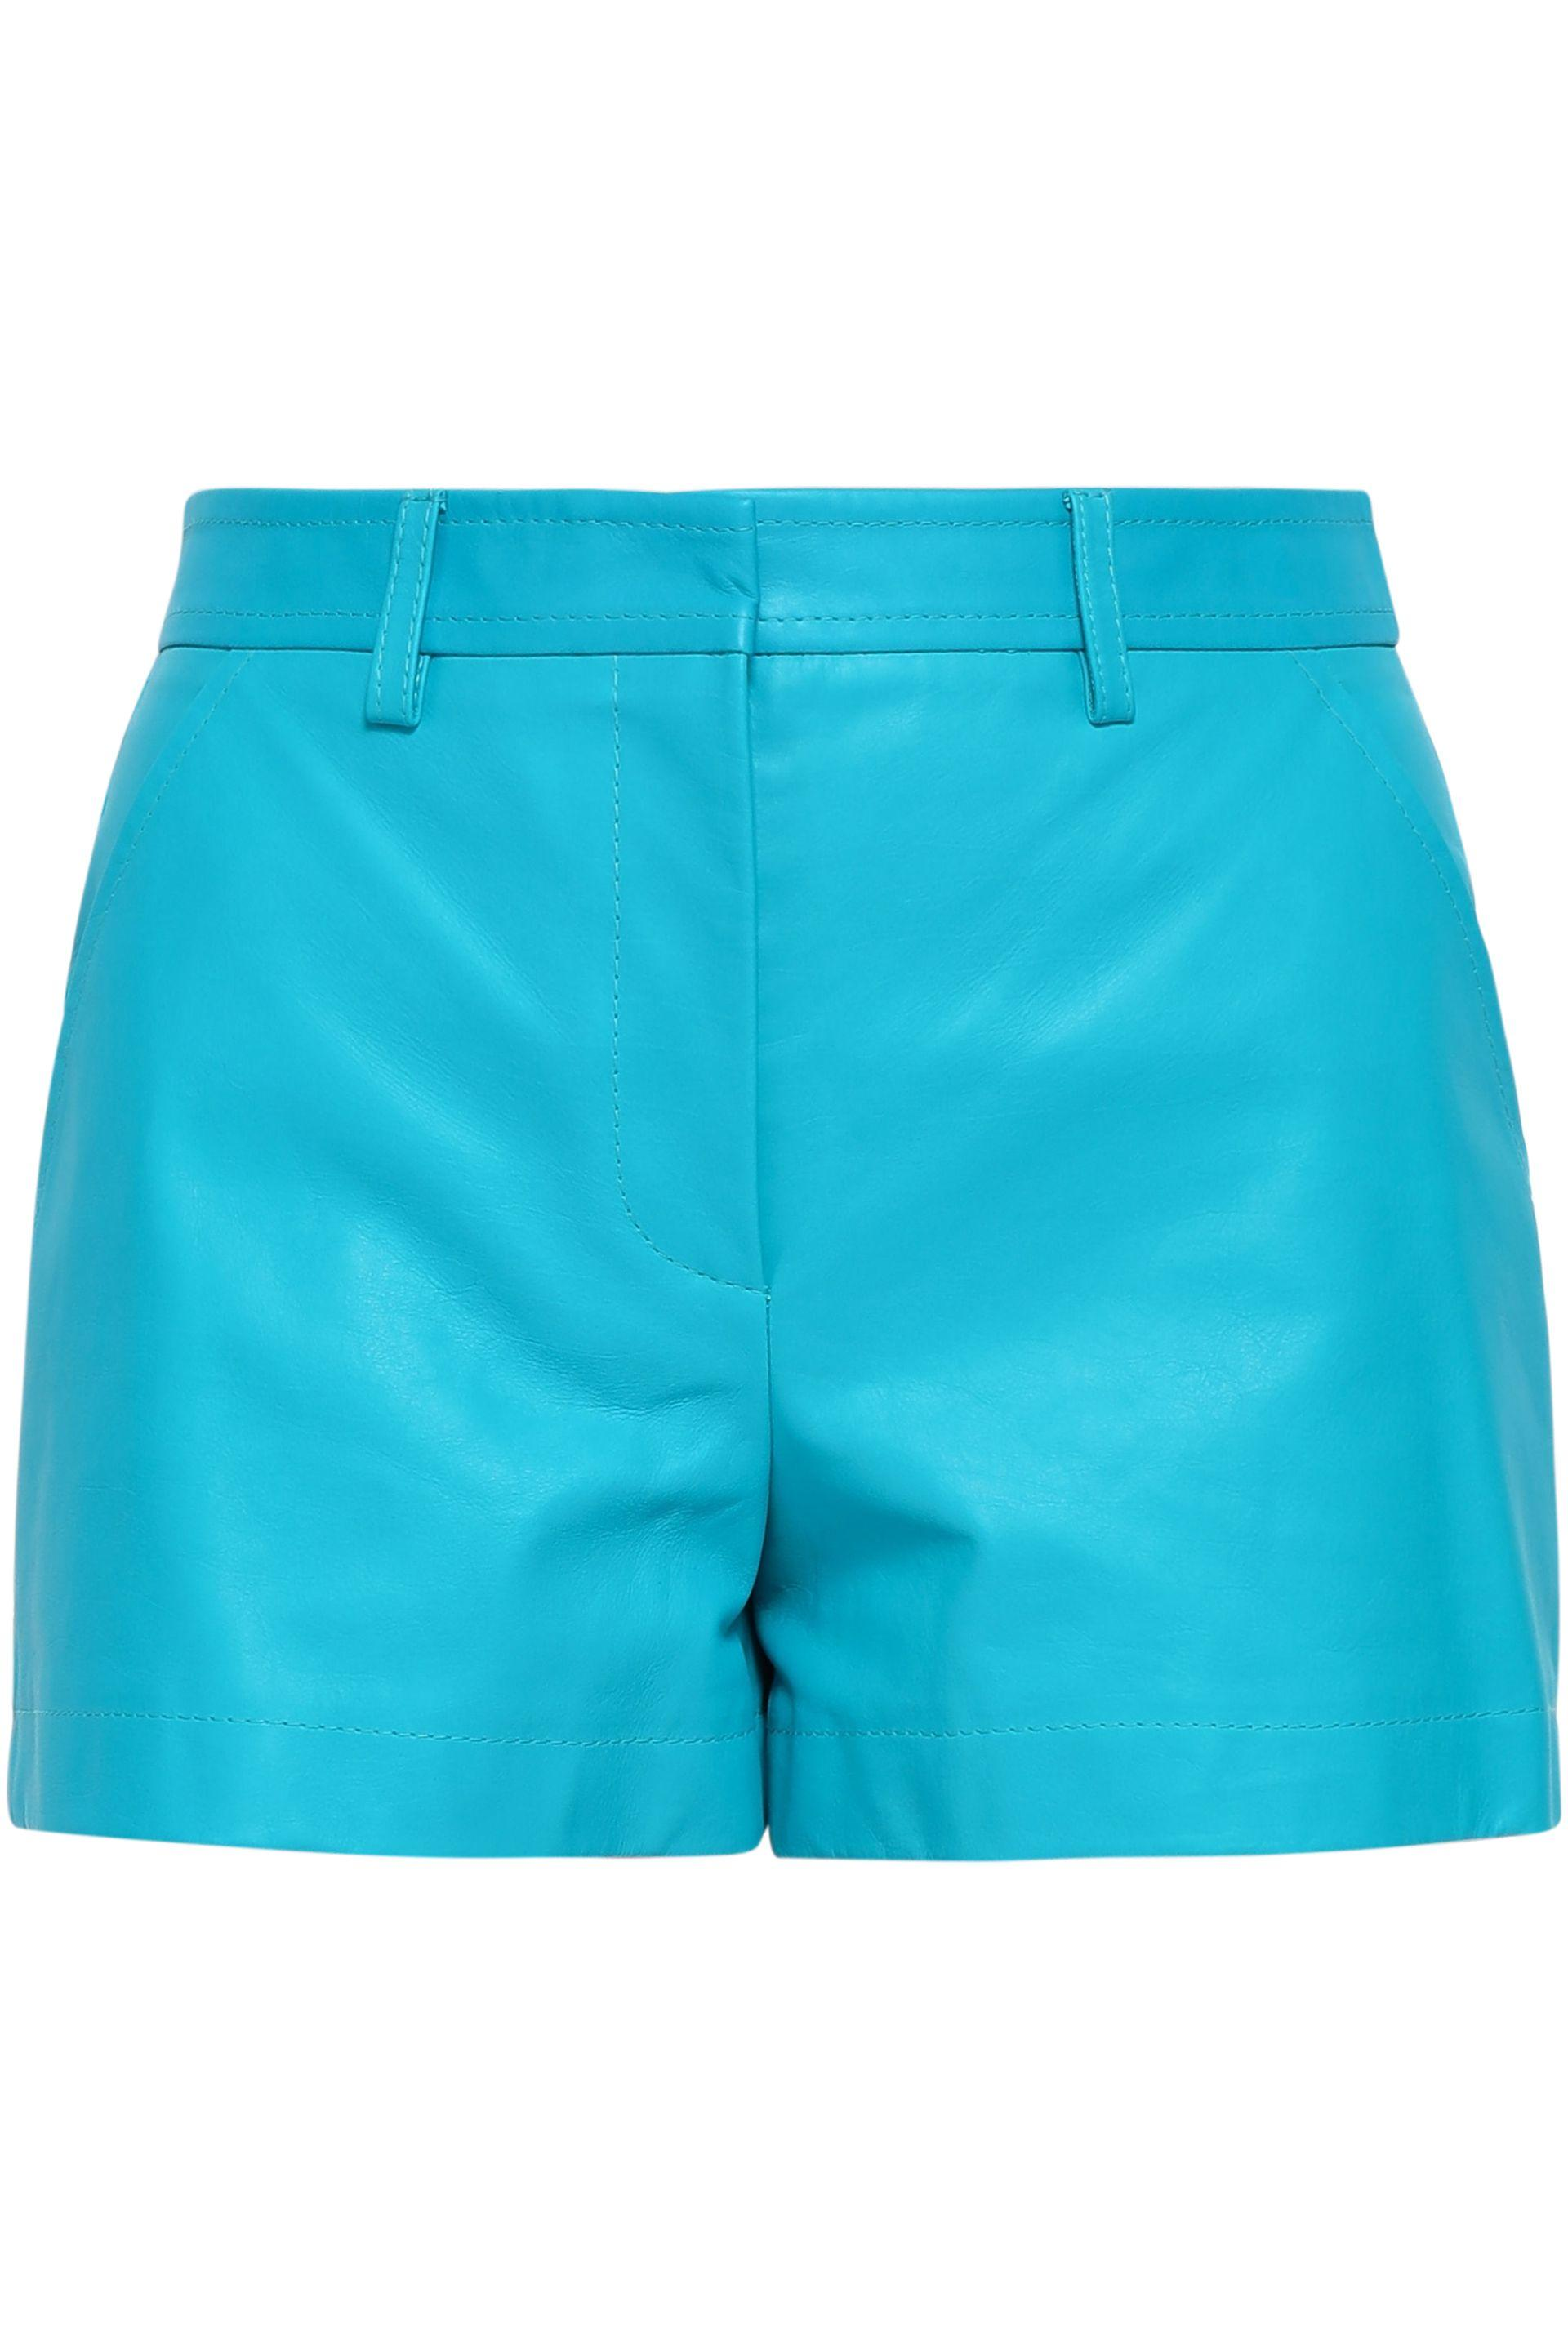 3740a0f81b46 Emilio Pucci Woman Leather Shorts Turquoise in Blue - Lyst